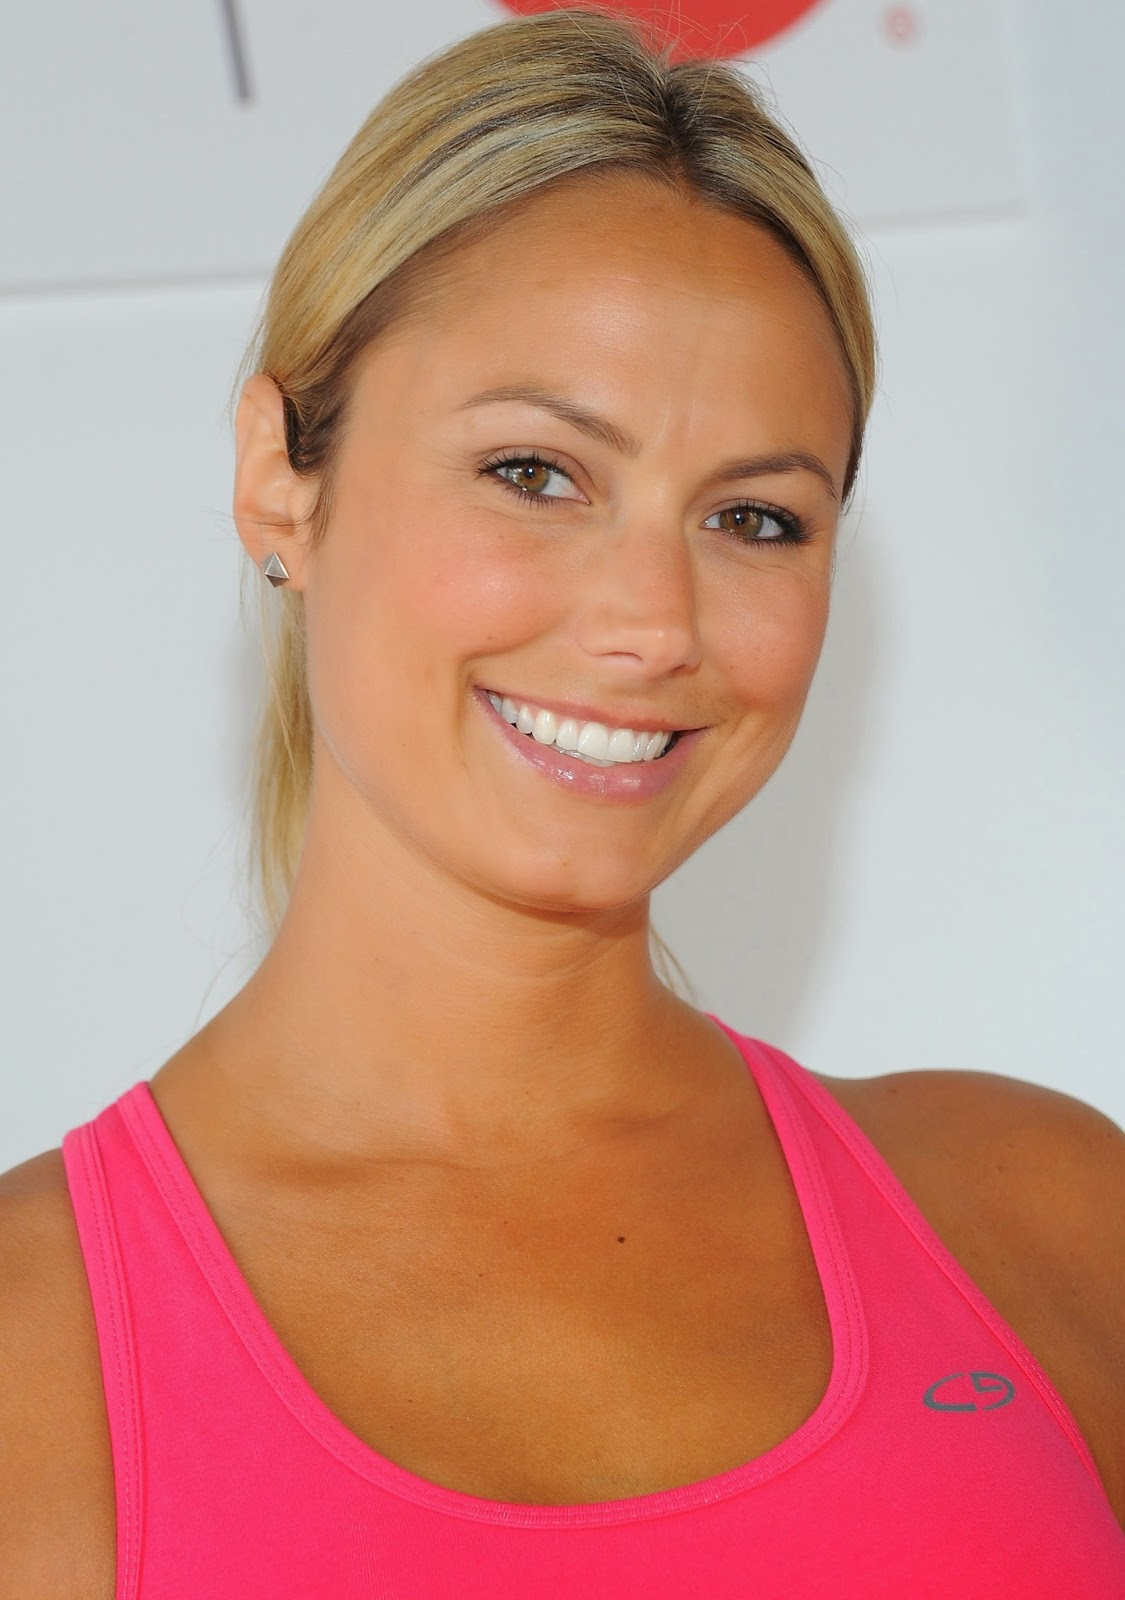 stacy keibler picture - photo #35